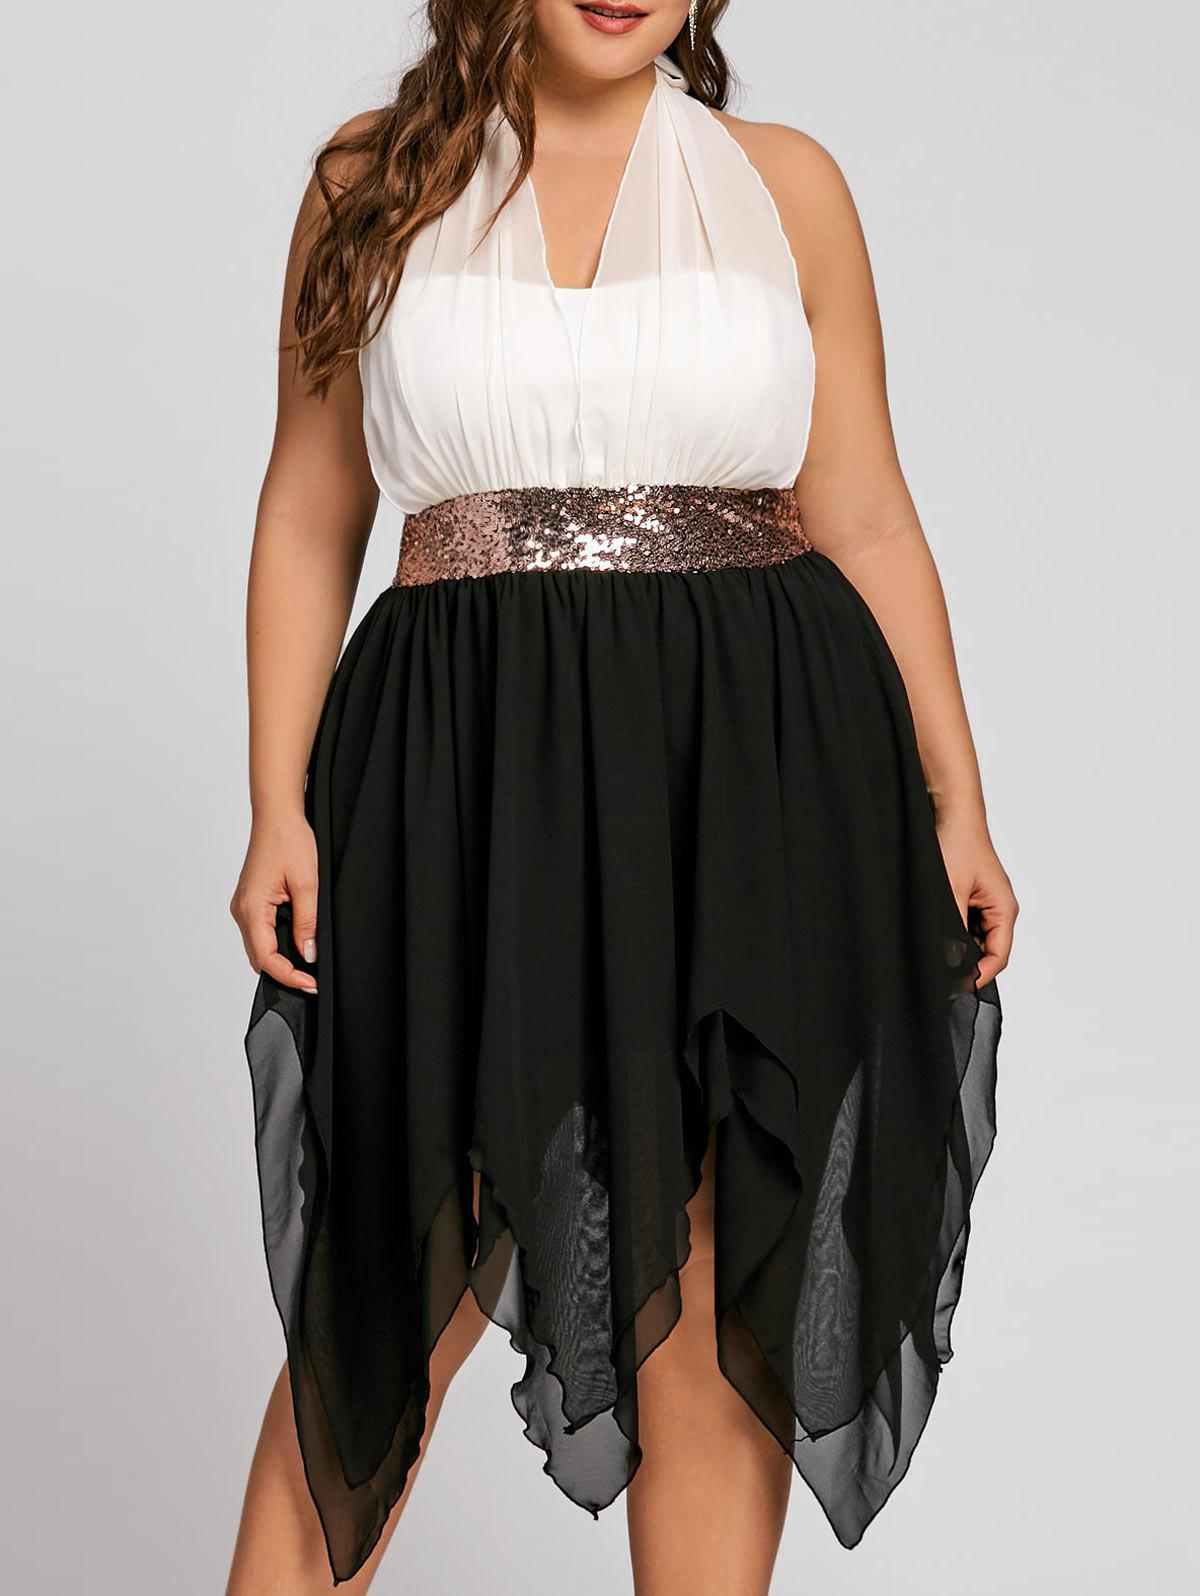 Sequins Empire Waisted Plus Size Handkerchief Dress